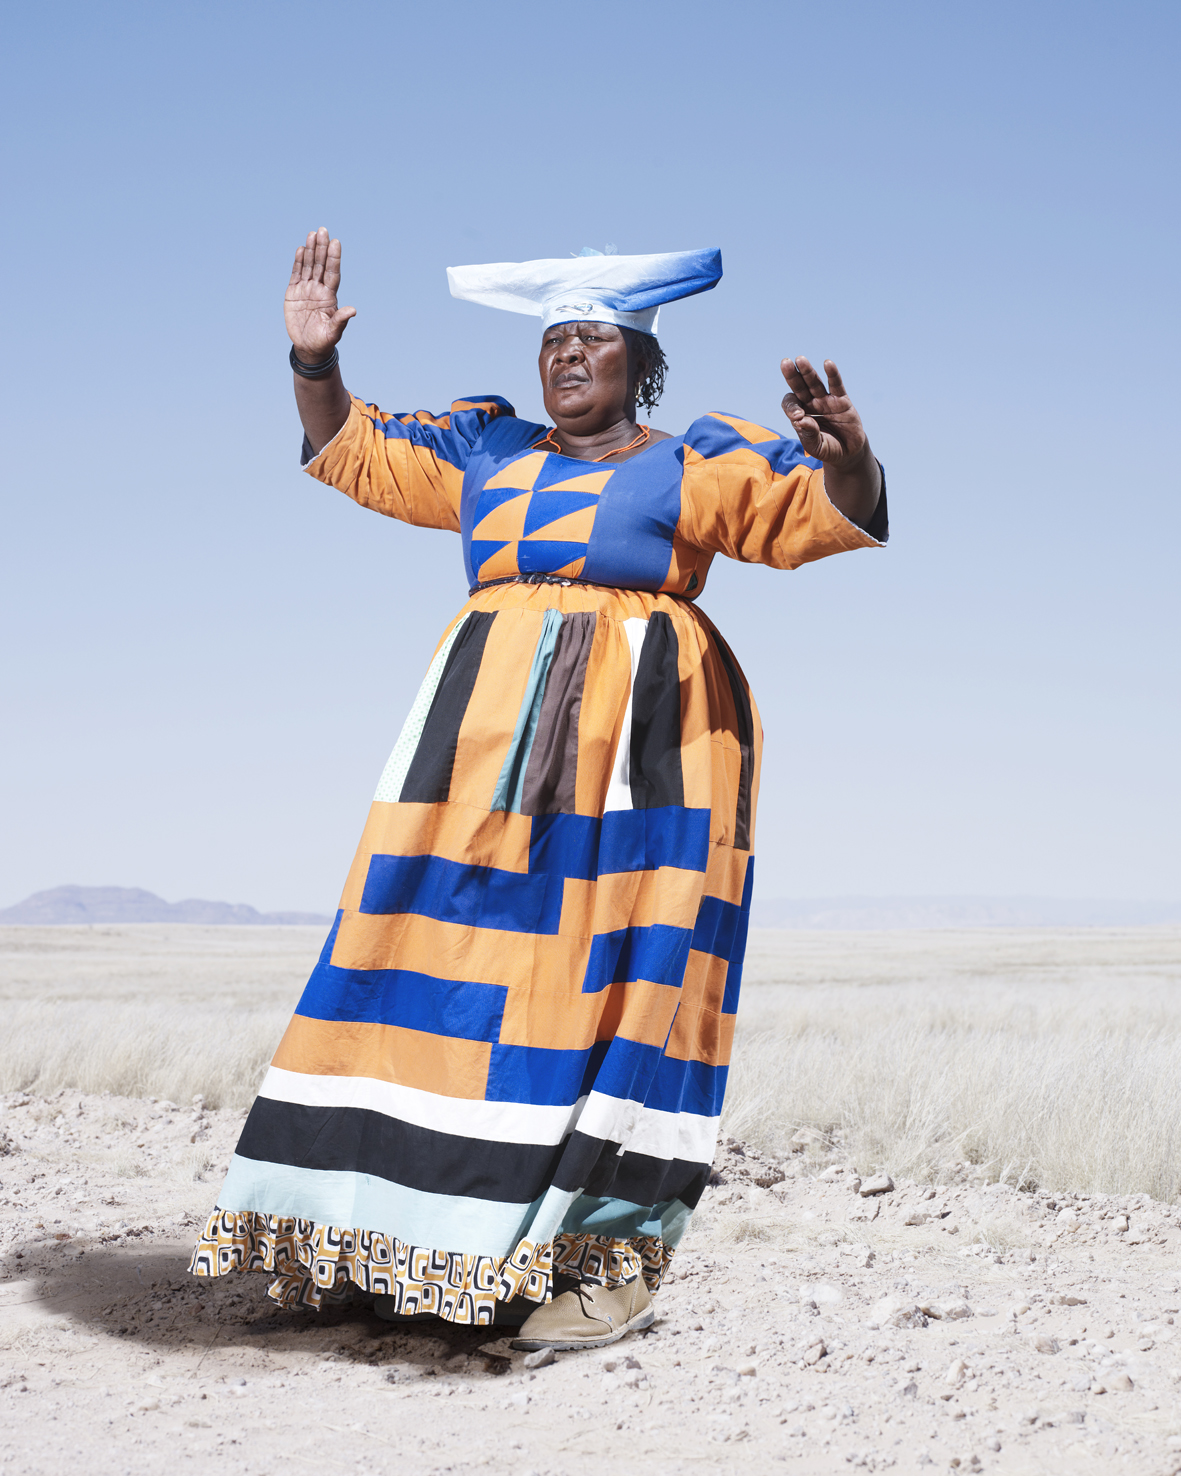 A Herero woman demonstrating the cow dance. Although relatively little is know about the precise origins and meaning of the dance, it signals the centrality of cattle to Herero culture.